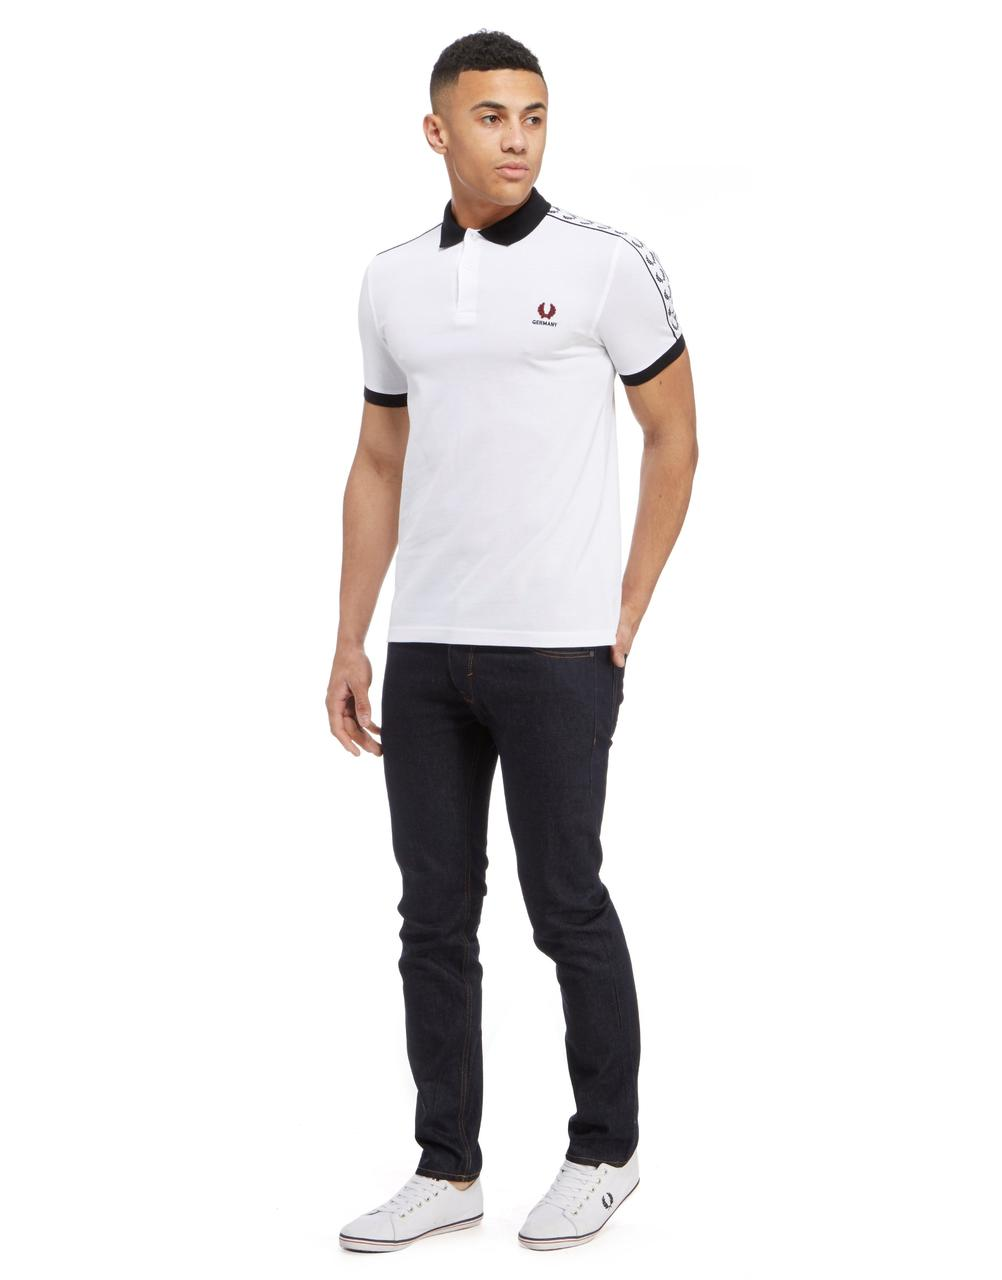 fred perry germany tape polo shirt white black blood polo 39 s football fashion blog. Black Bedroom Furniture Sets. Home Design Ideas